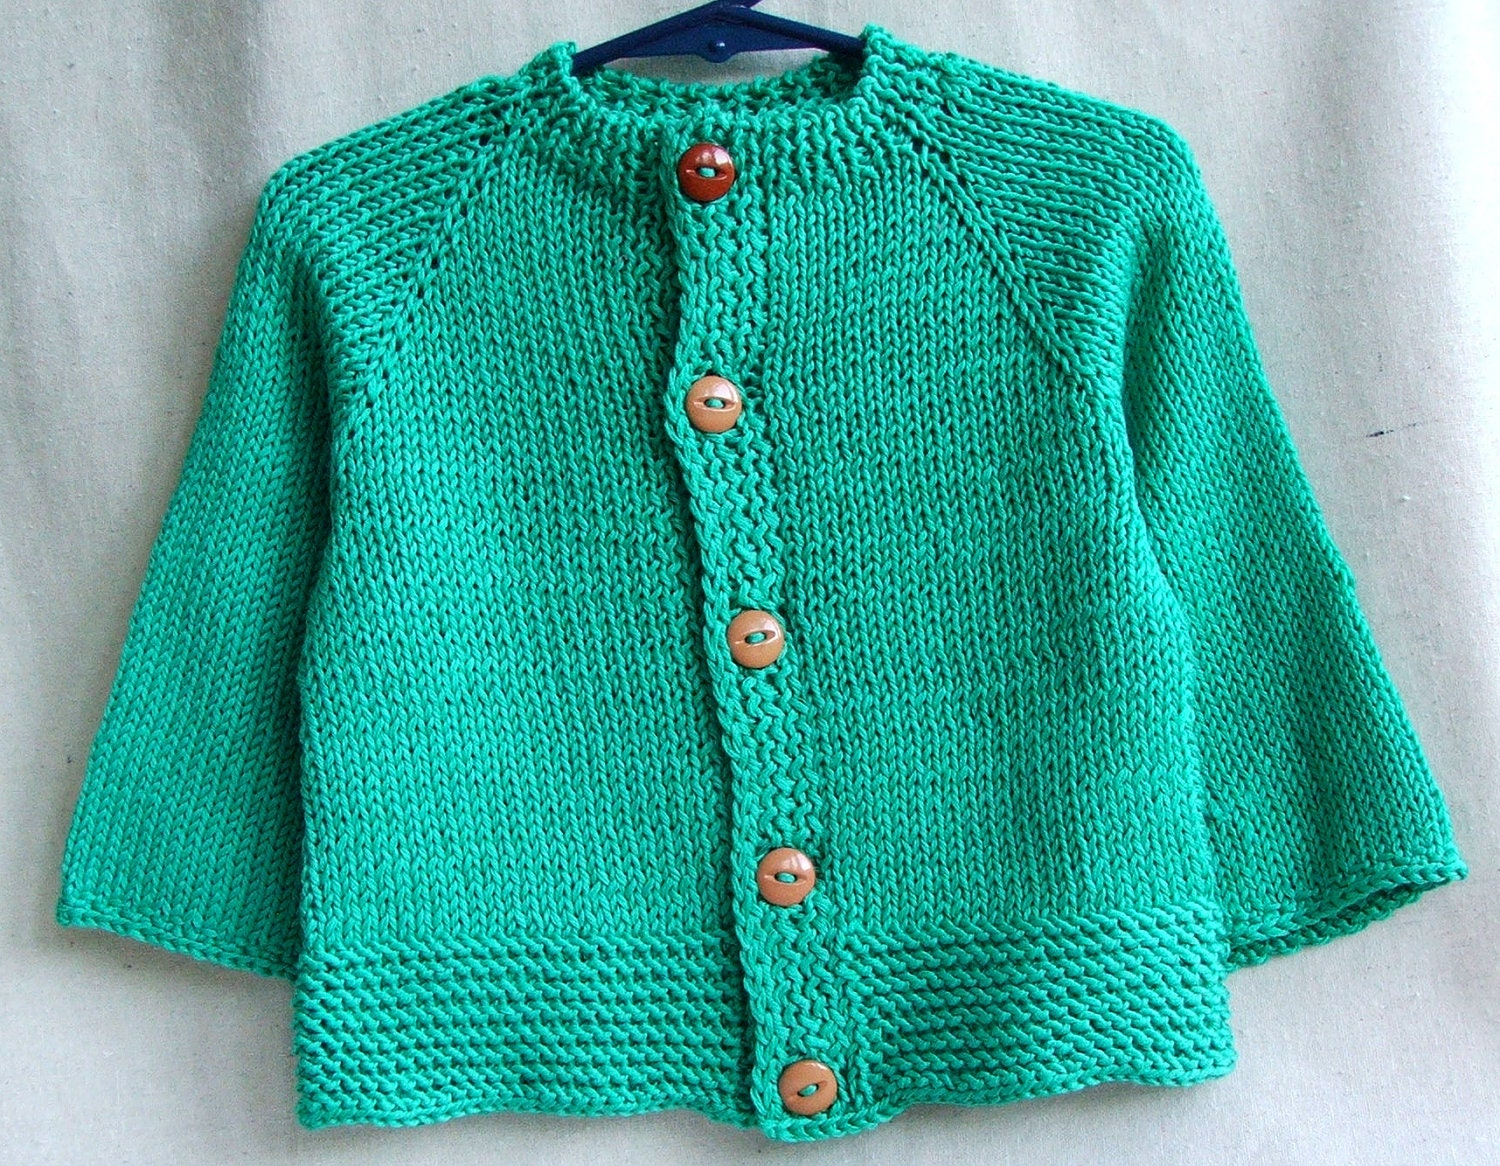 Dordor & Gorgor ORGANIC Baby Cardigan Top, Dye Free, % Cotton. by Dordor & Gorgor. $ $ 11 99 Prime. FREE Shipping on eligible orders. Some sizes/colors are Prime eligible. fabrics make baby cardigan sweater very soft and warm, both Simple Joys by Carter's Baby 2- Pack Sweater, by Simple Joys by Carter's.